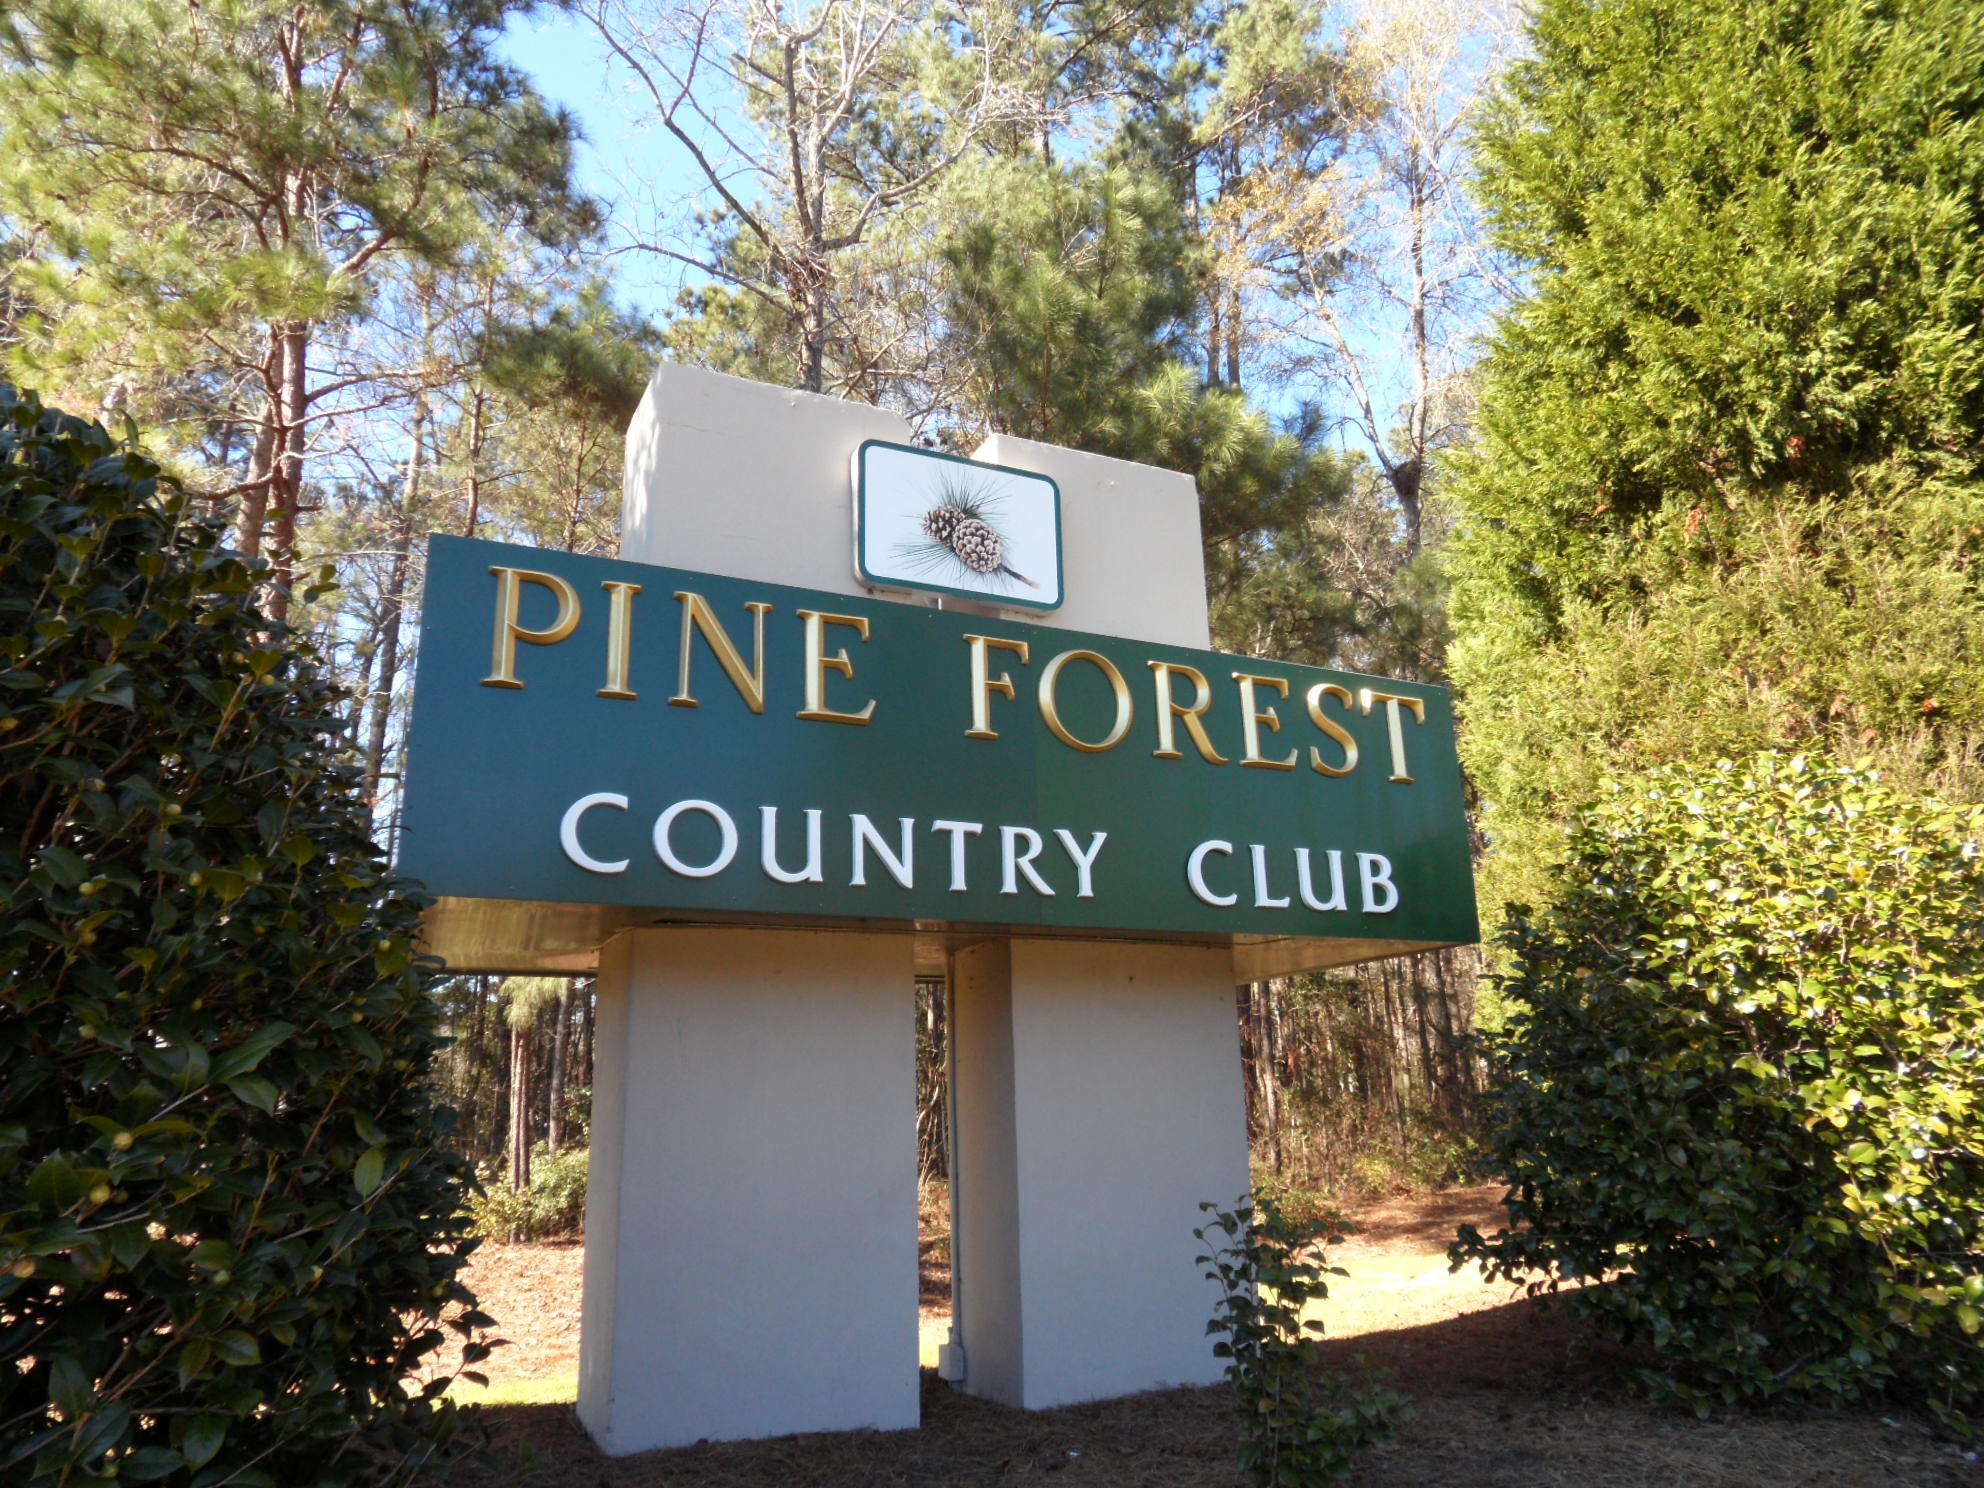 Pine Forest Country Club Homes For Sale - 526 Kilarney, Summerville, SC - 2